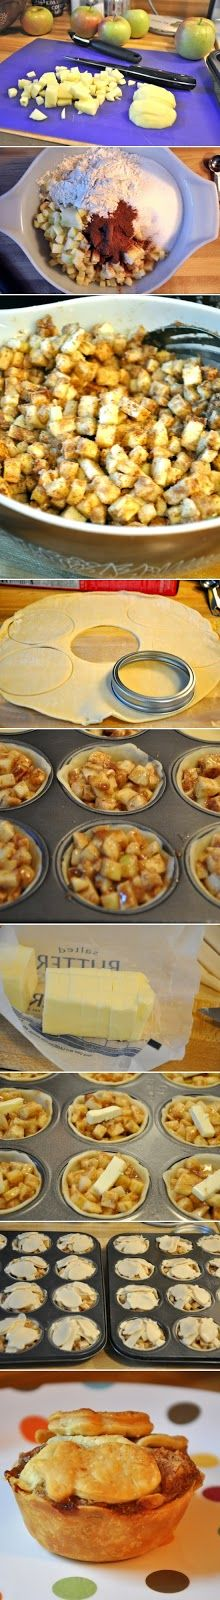 DIY Mini Apple Pie #pie #diy #recipe. Don't ruin it with crust on top make it into a Dutch apple tart with a sugar/butter/flour/cinnamon topping!